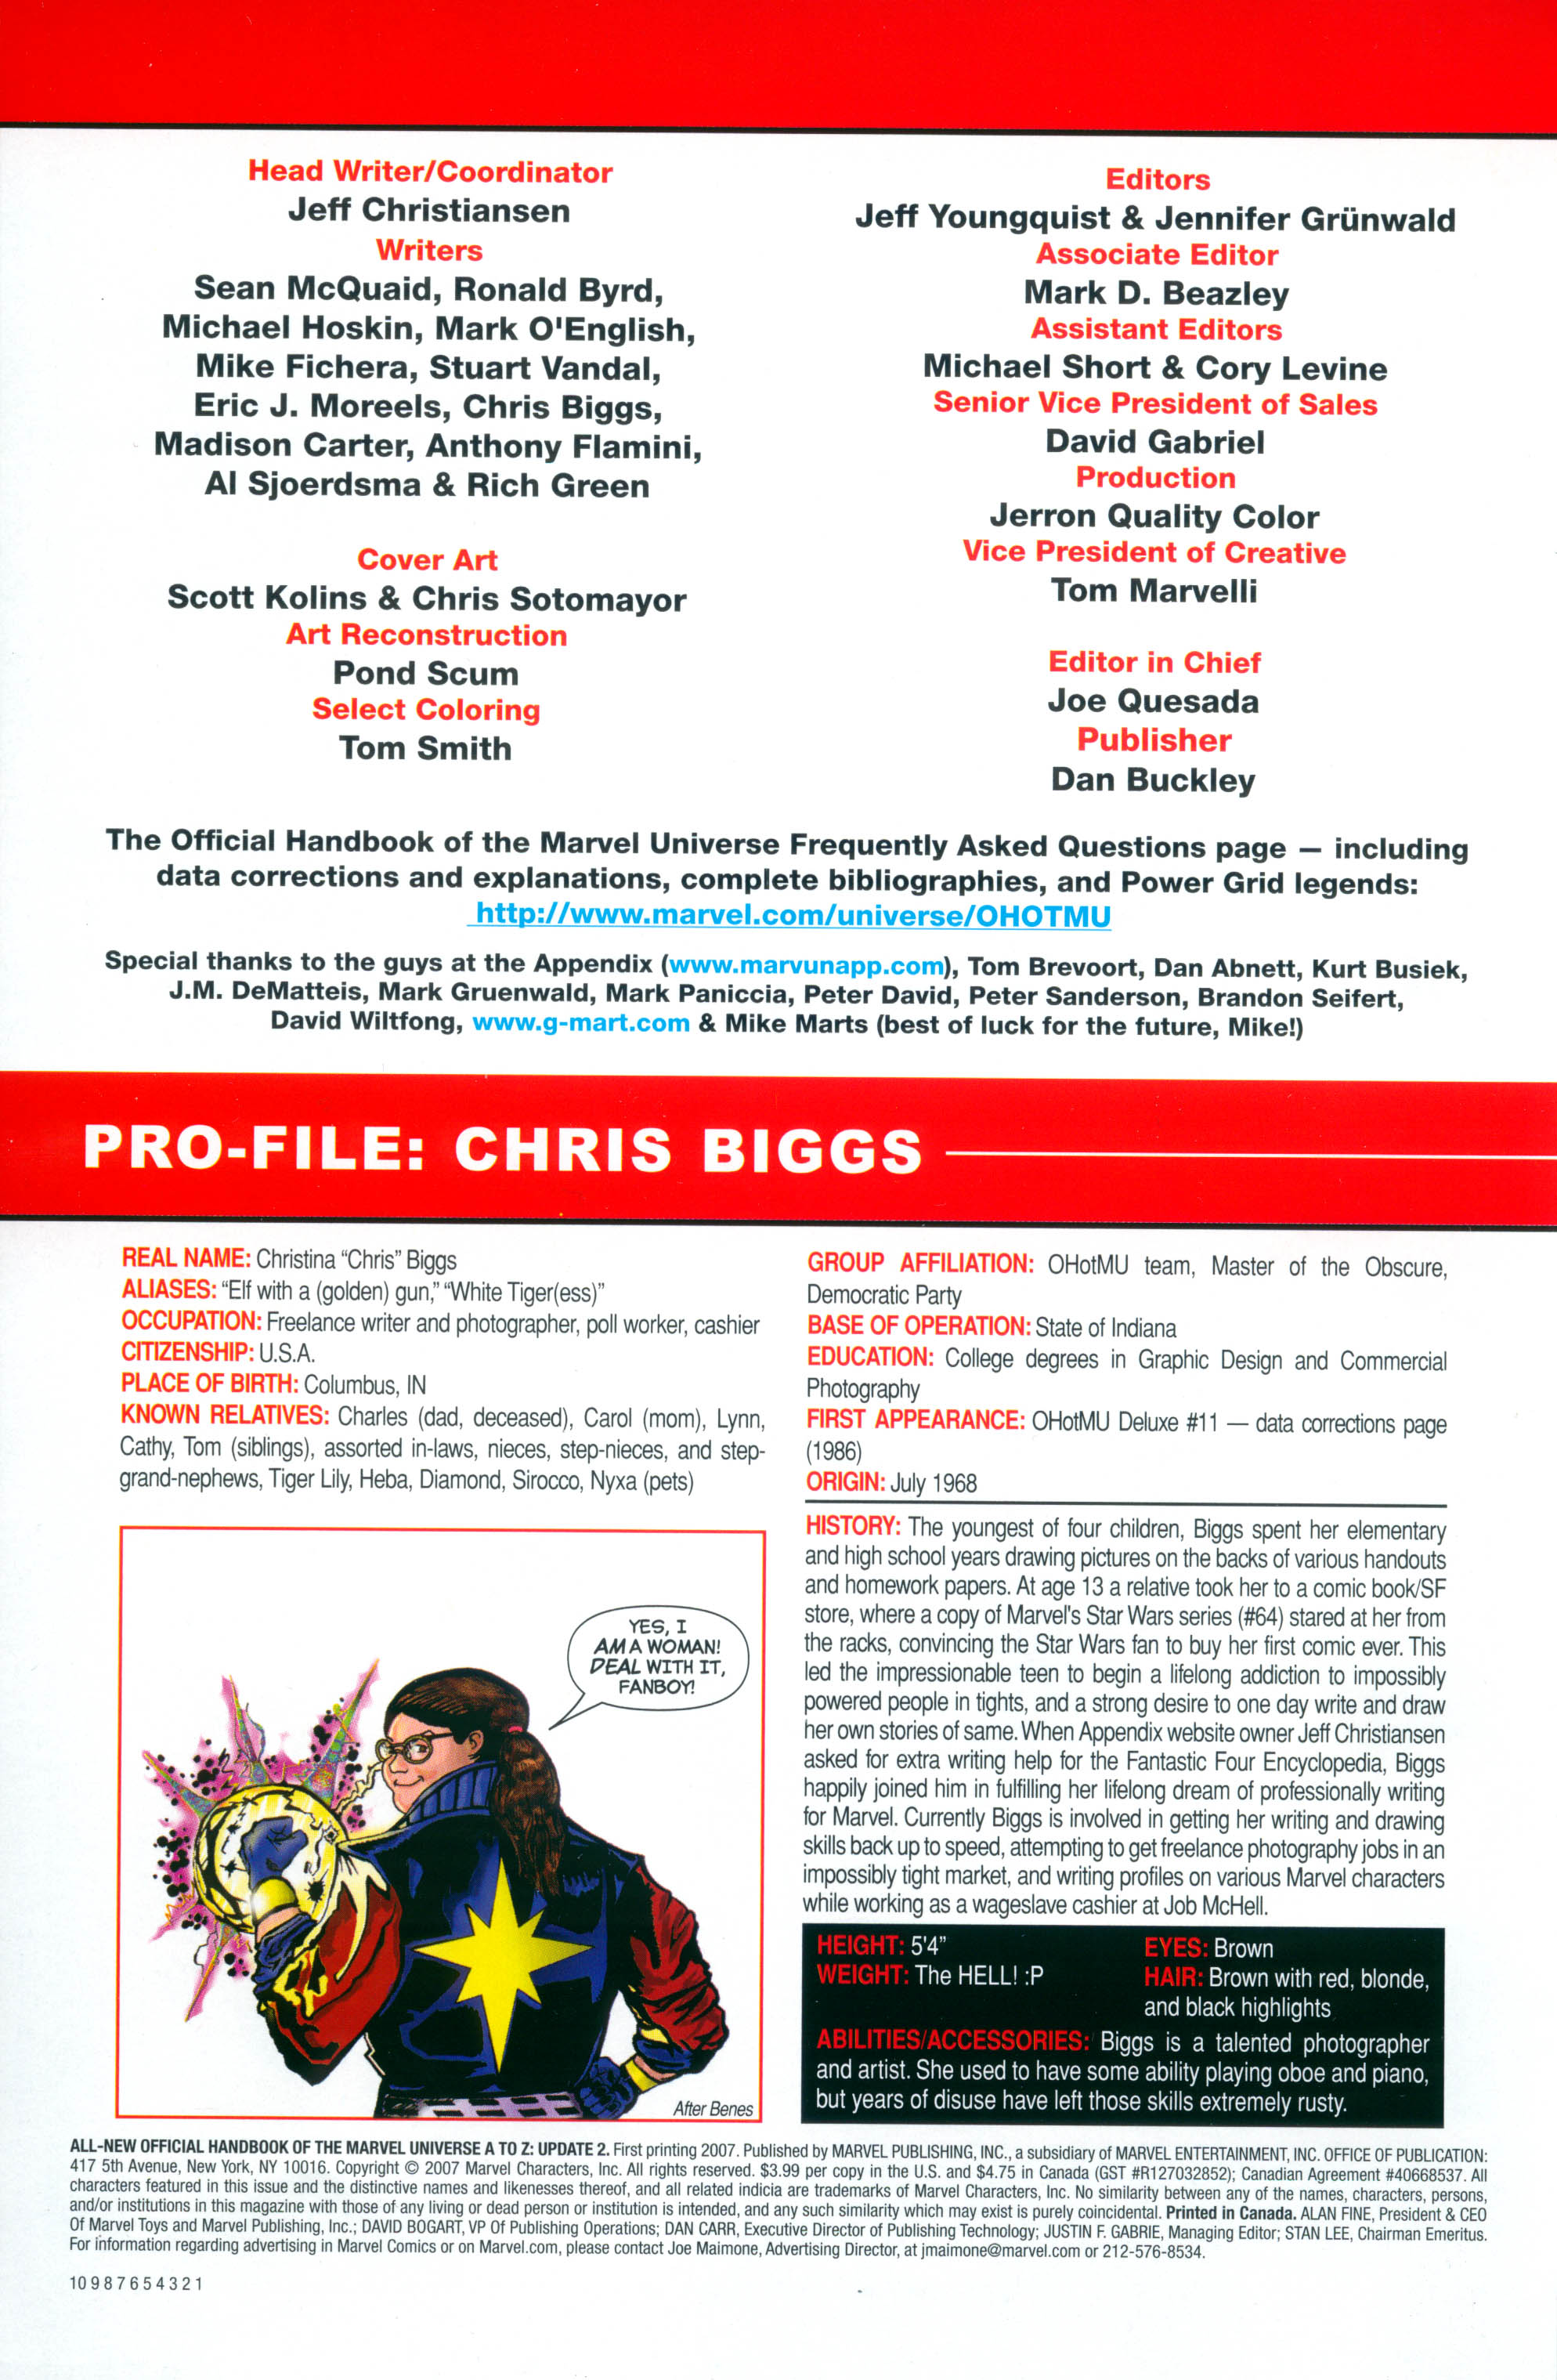 Read online All-New Official Handbook of the Marvel Universe A to Z: Update comic -  Issue #2 - 2